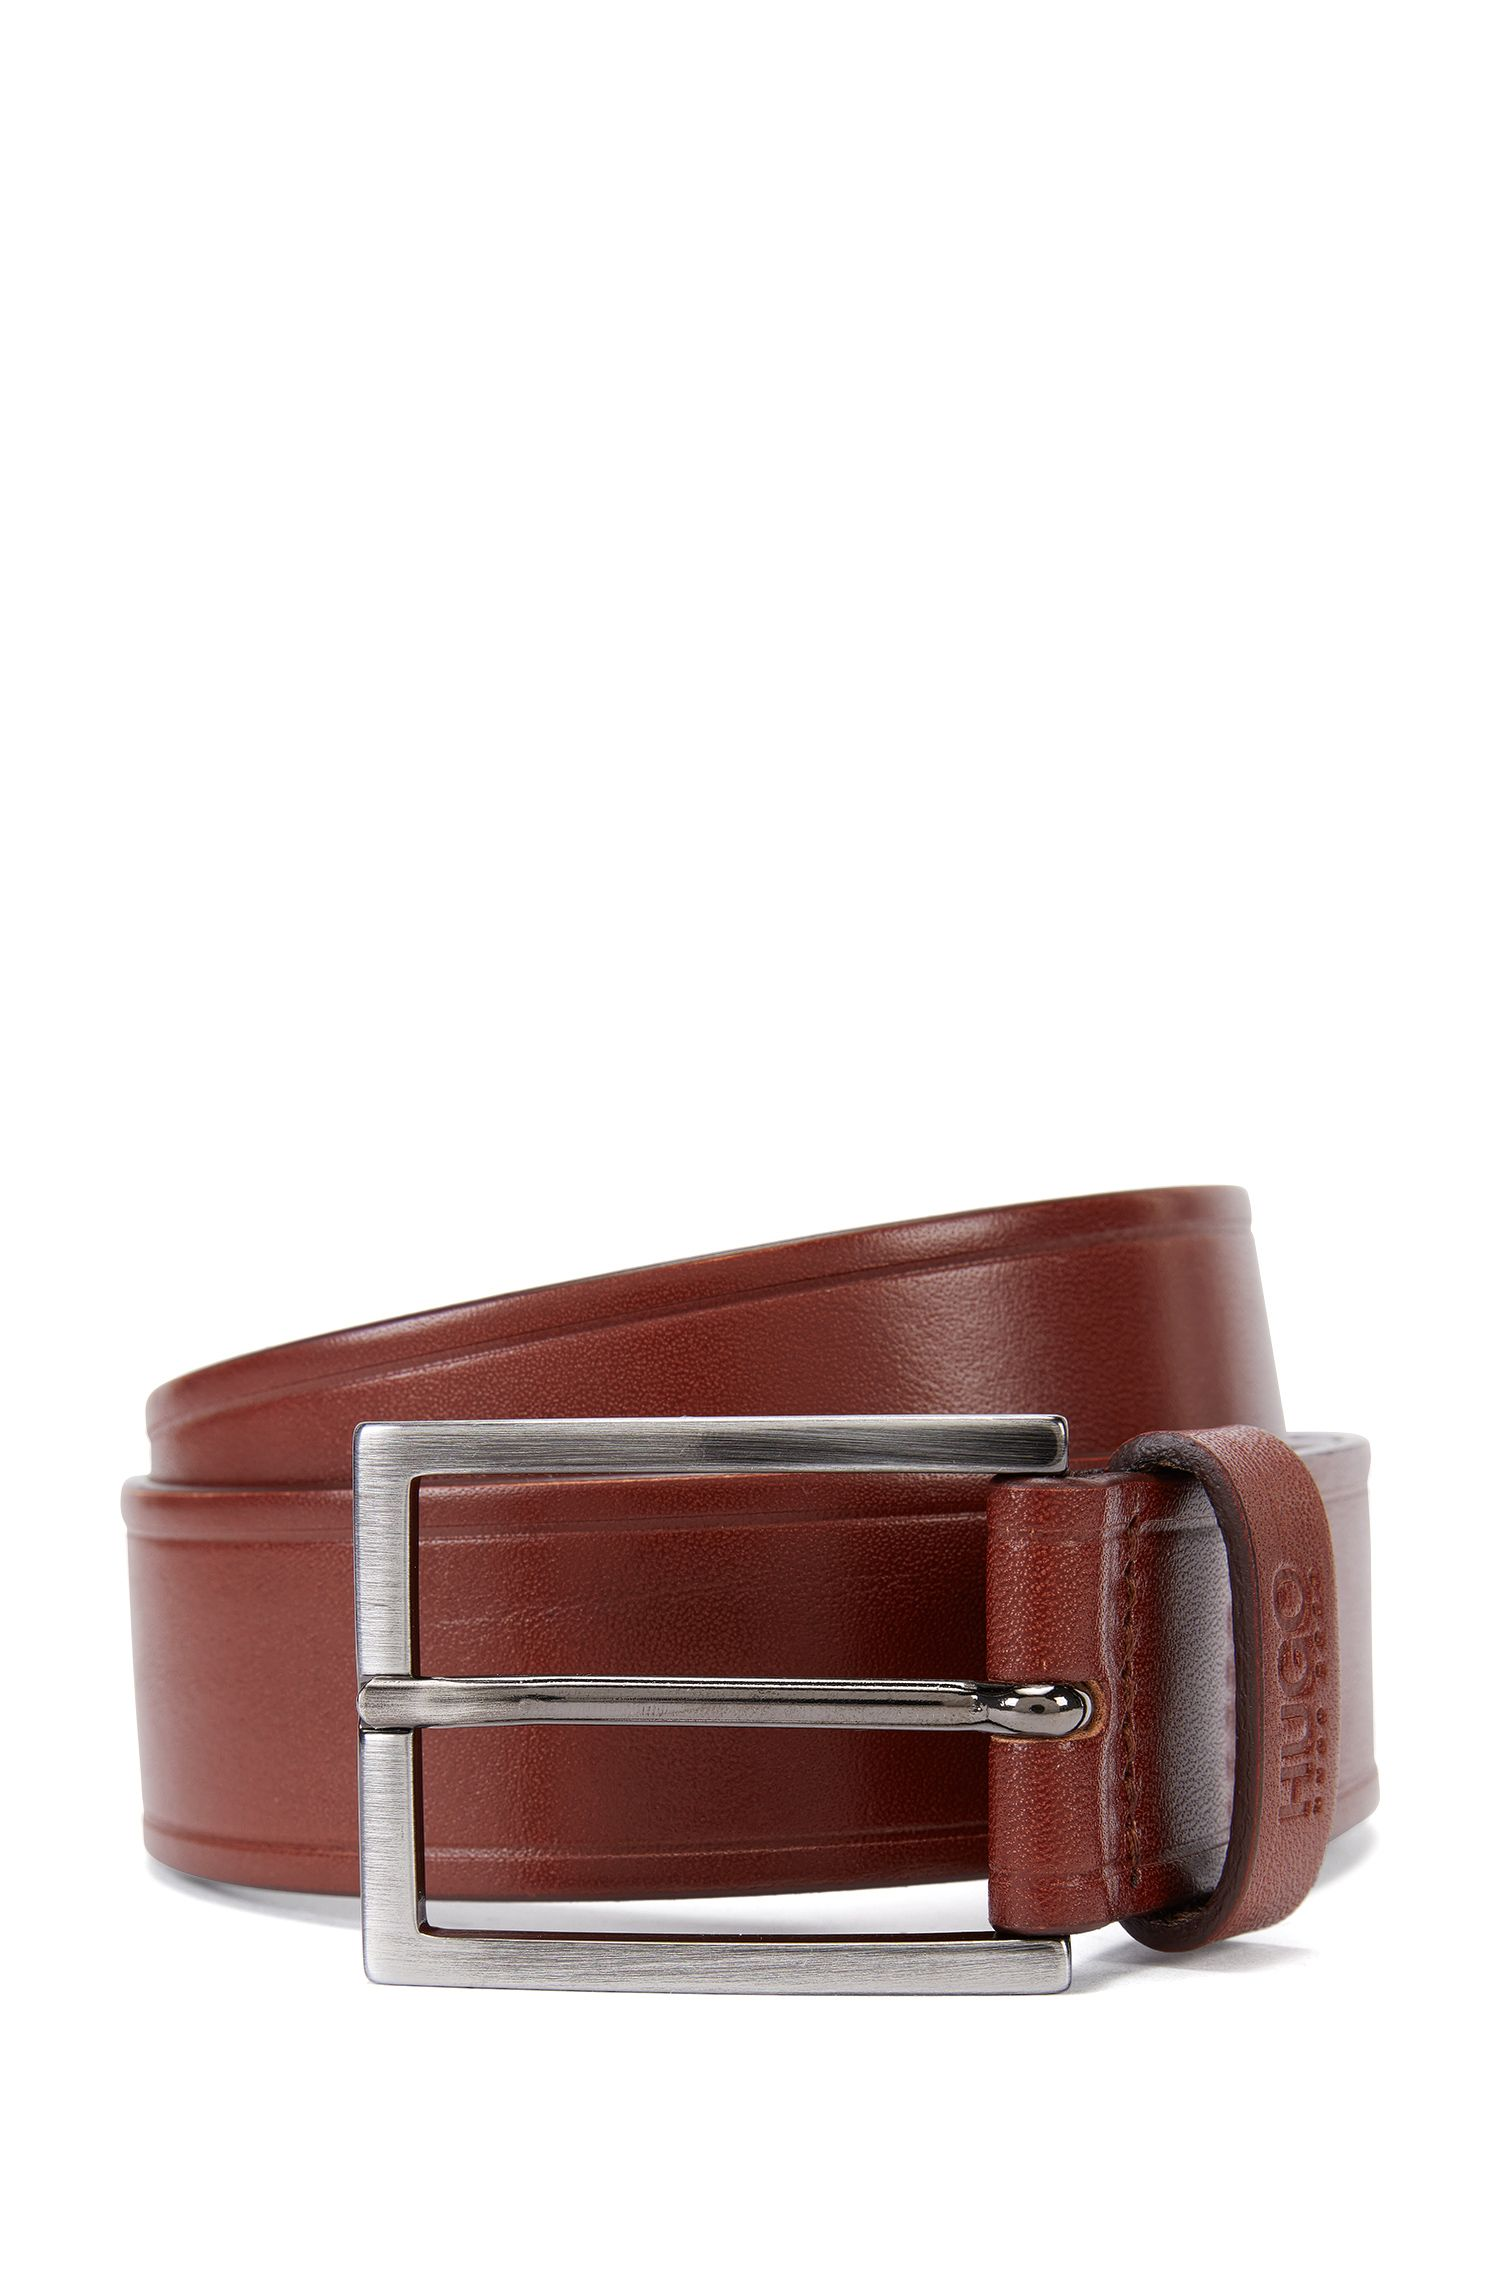 Leather belt with embossed details